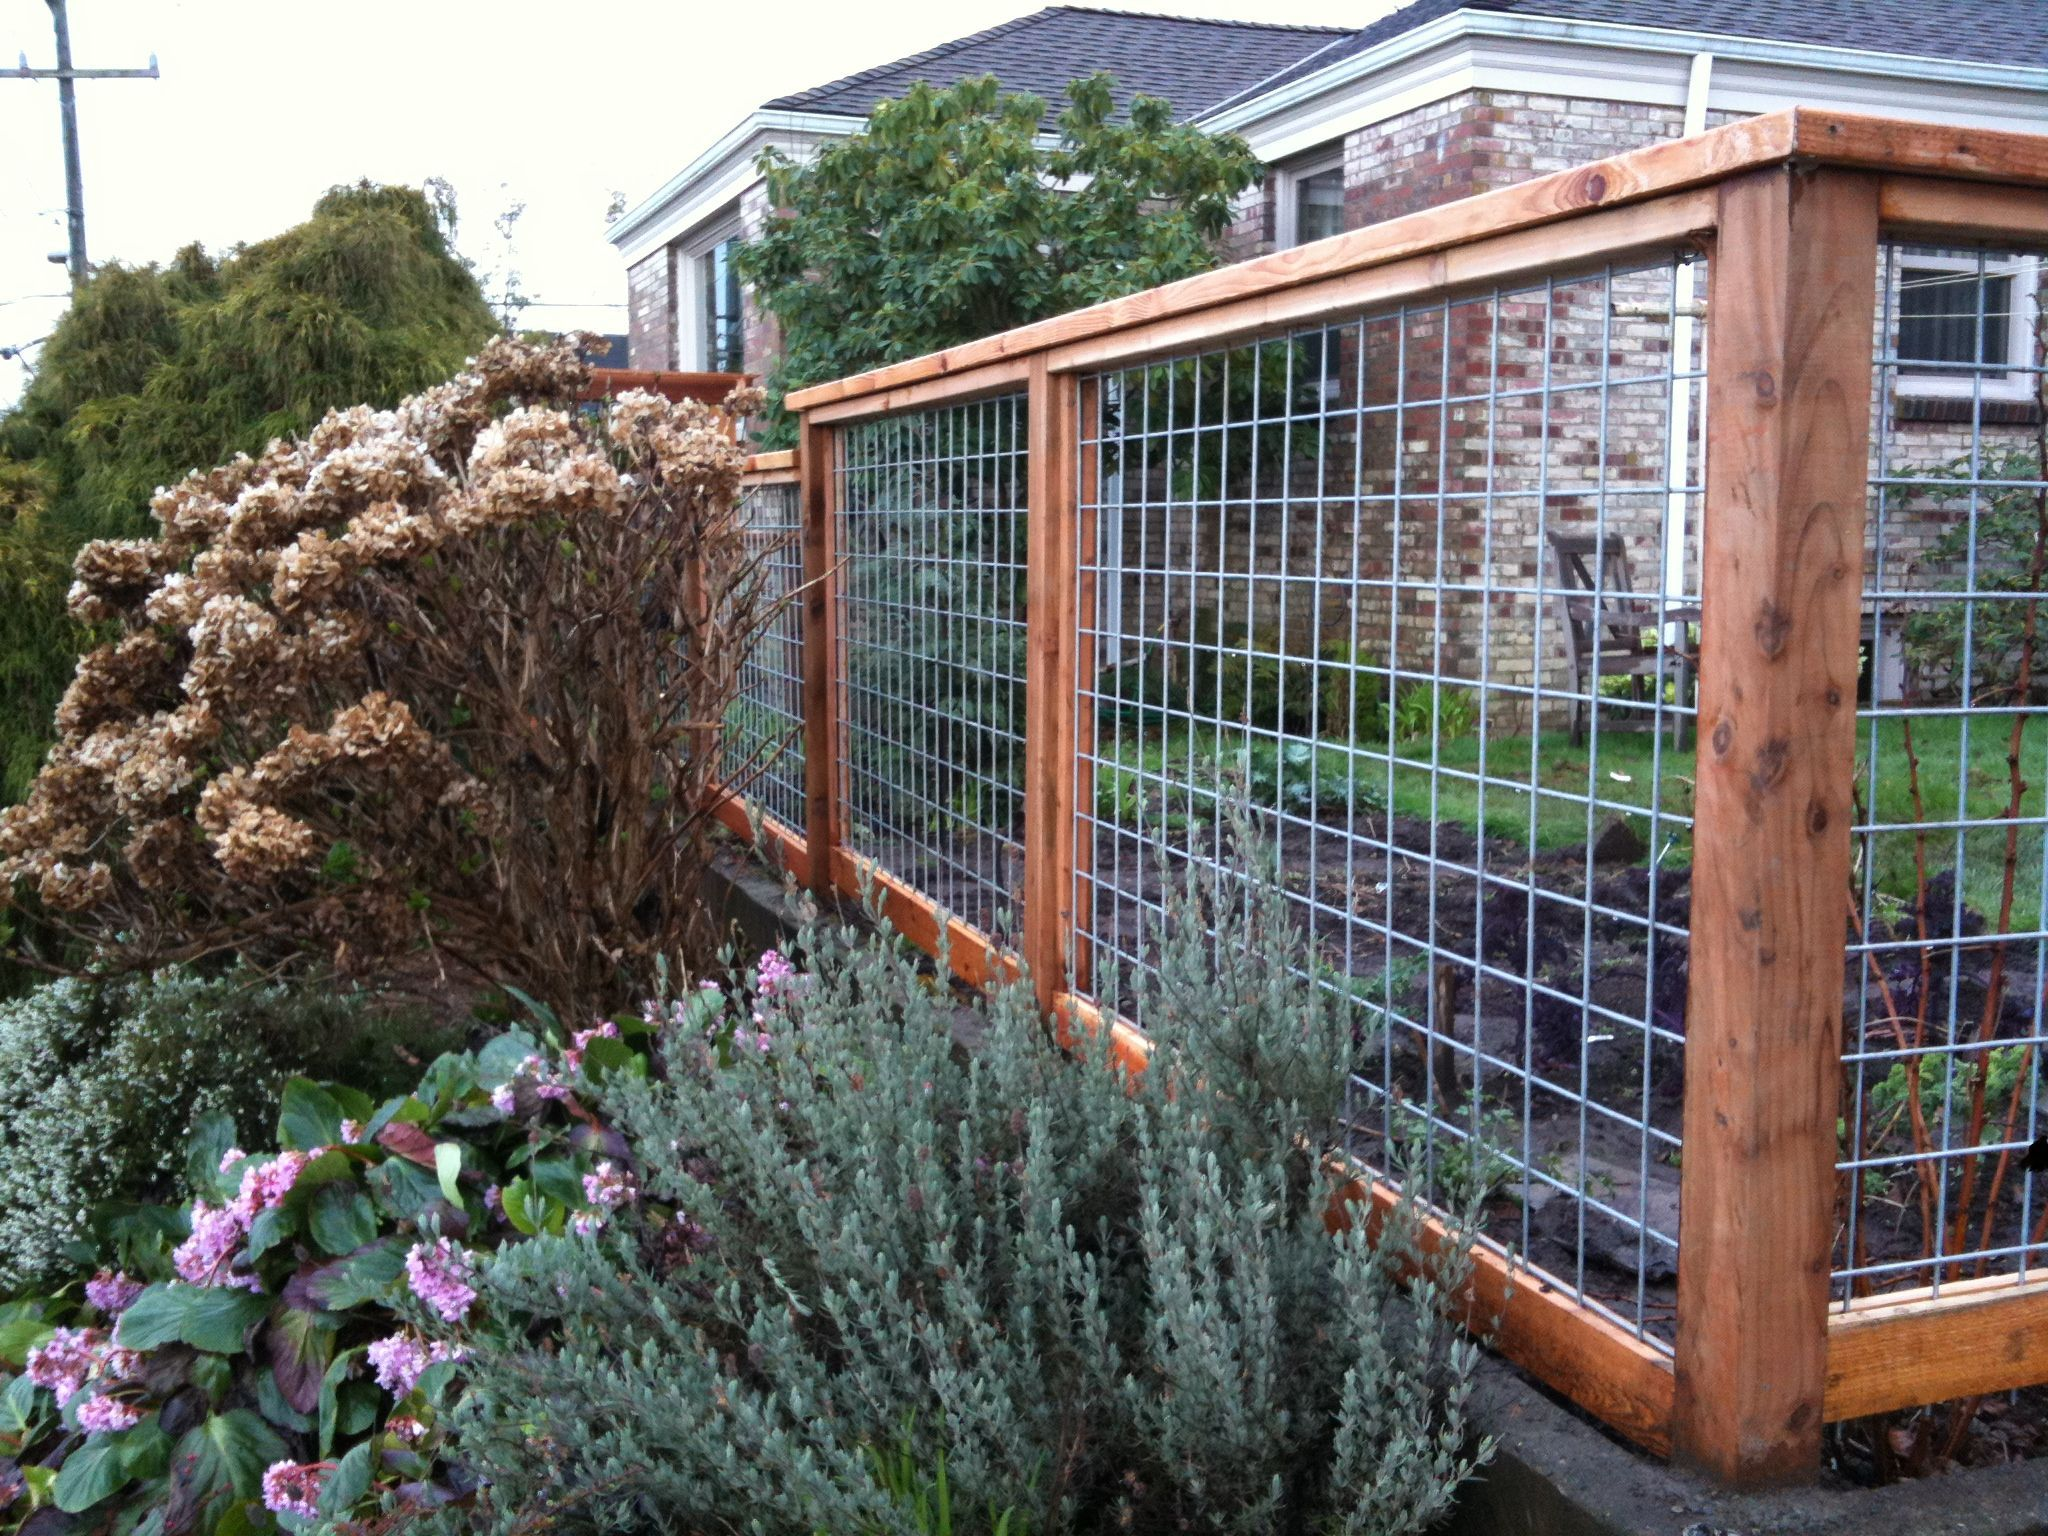 Aps We Have A Fence Just Like This We Love It And Get Lots Of Compliments The Wire Panels Are Ava In 2020 Cheap Garden Fencing Backyard Fences Garden In The Woods